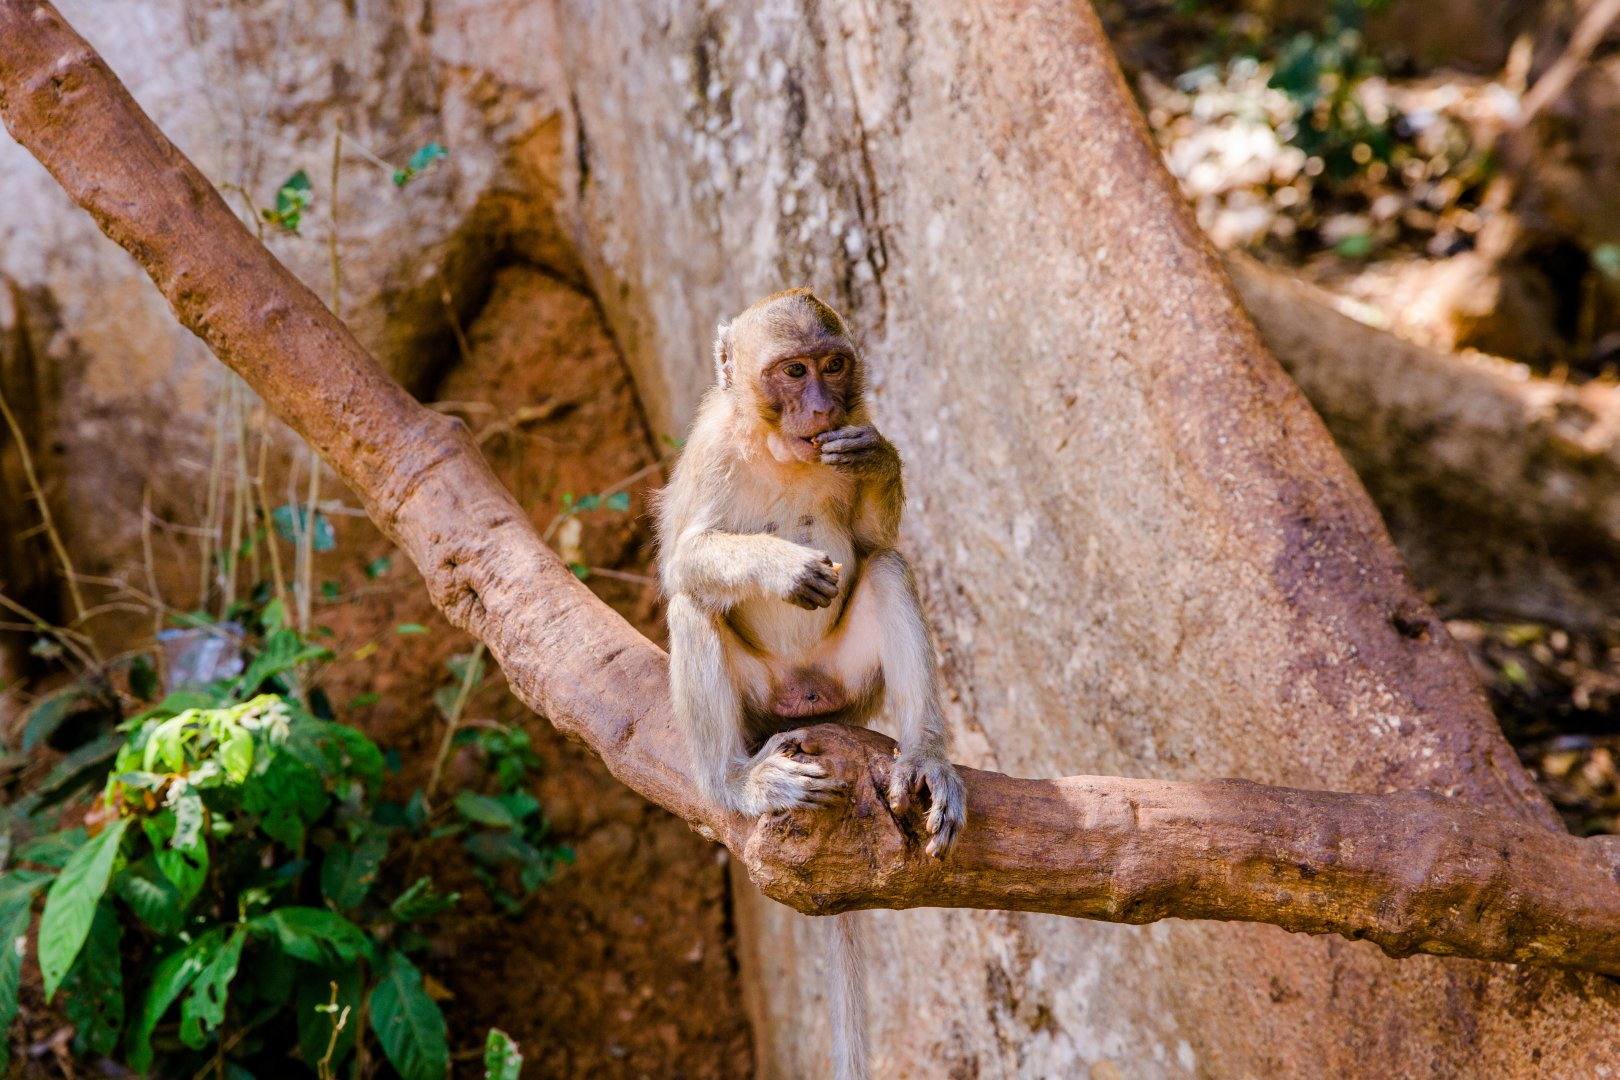 Macaque Primate Wildlife Old world monkey New World monkey Tree Terrestrial animal Organism Branch Zoo Plant Trunk Fawn Jungle Tail National park Plant stem